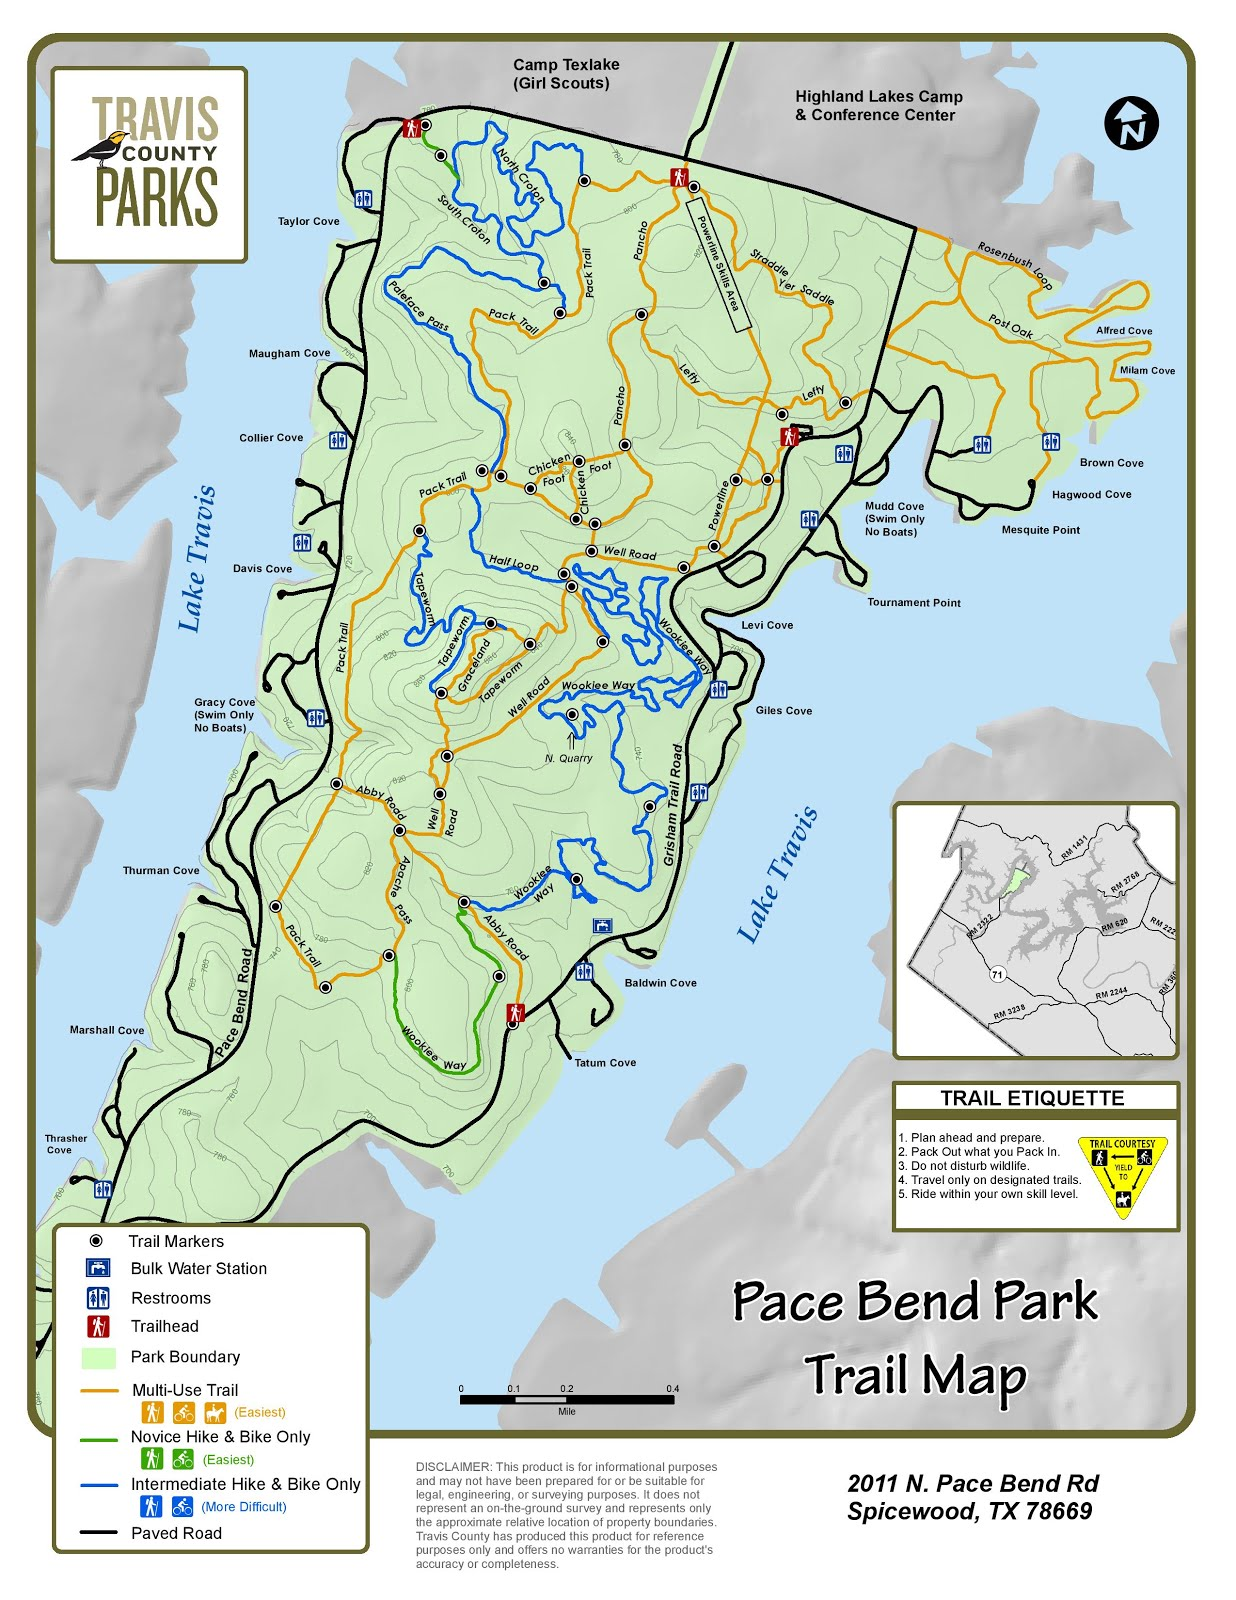 Pace Bend Park Map Adventures with BeeGee: Trip Report: Pace Bend Park Pace Bend Park Map